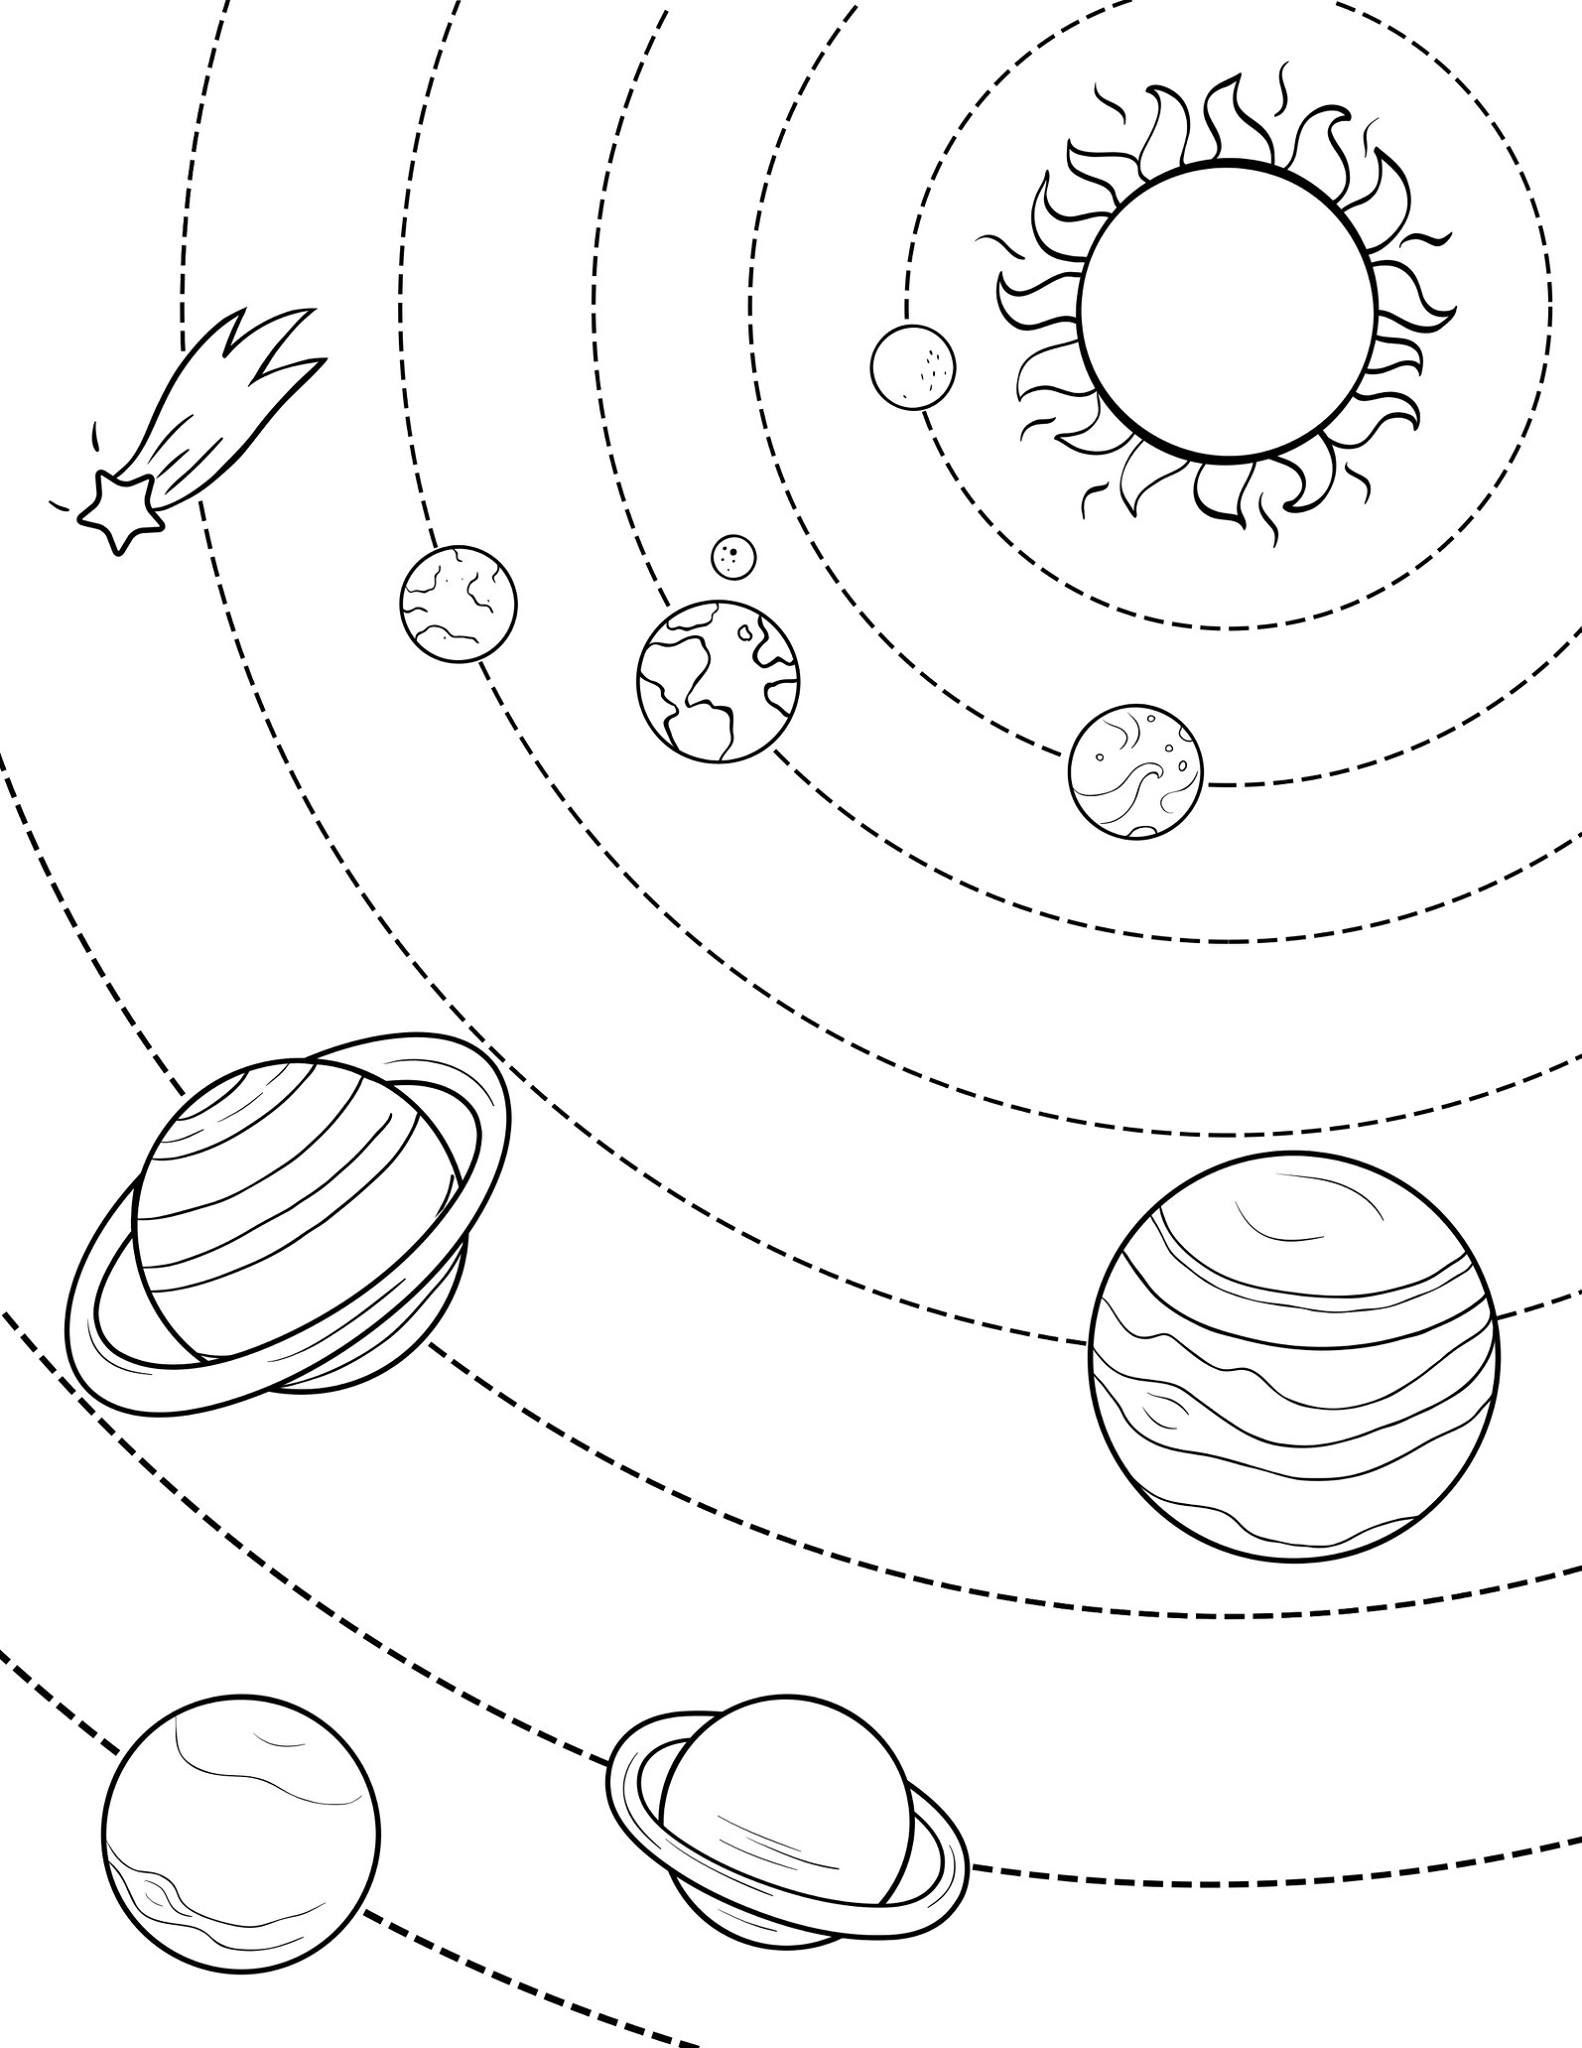 Pin By Isabel Bermejo On Universo Solar System Coloring Pages Planet Coloring Pages Space Coloring Pages